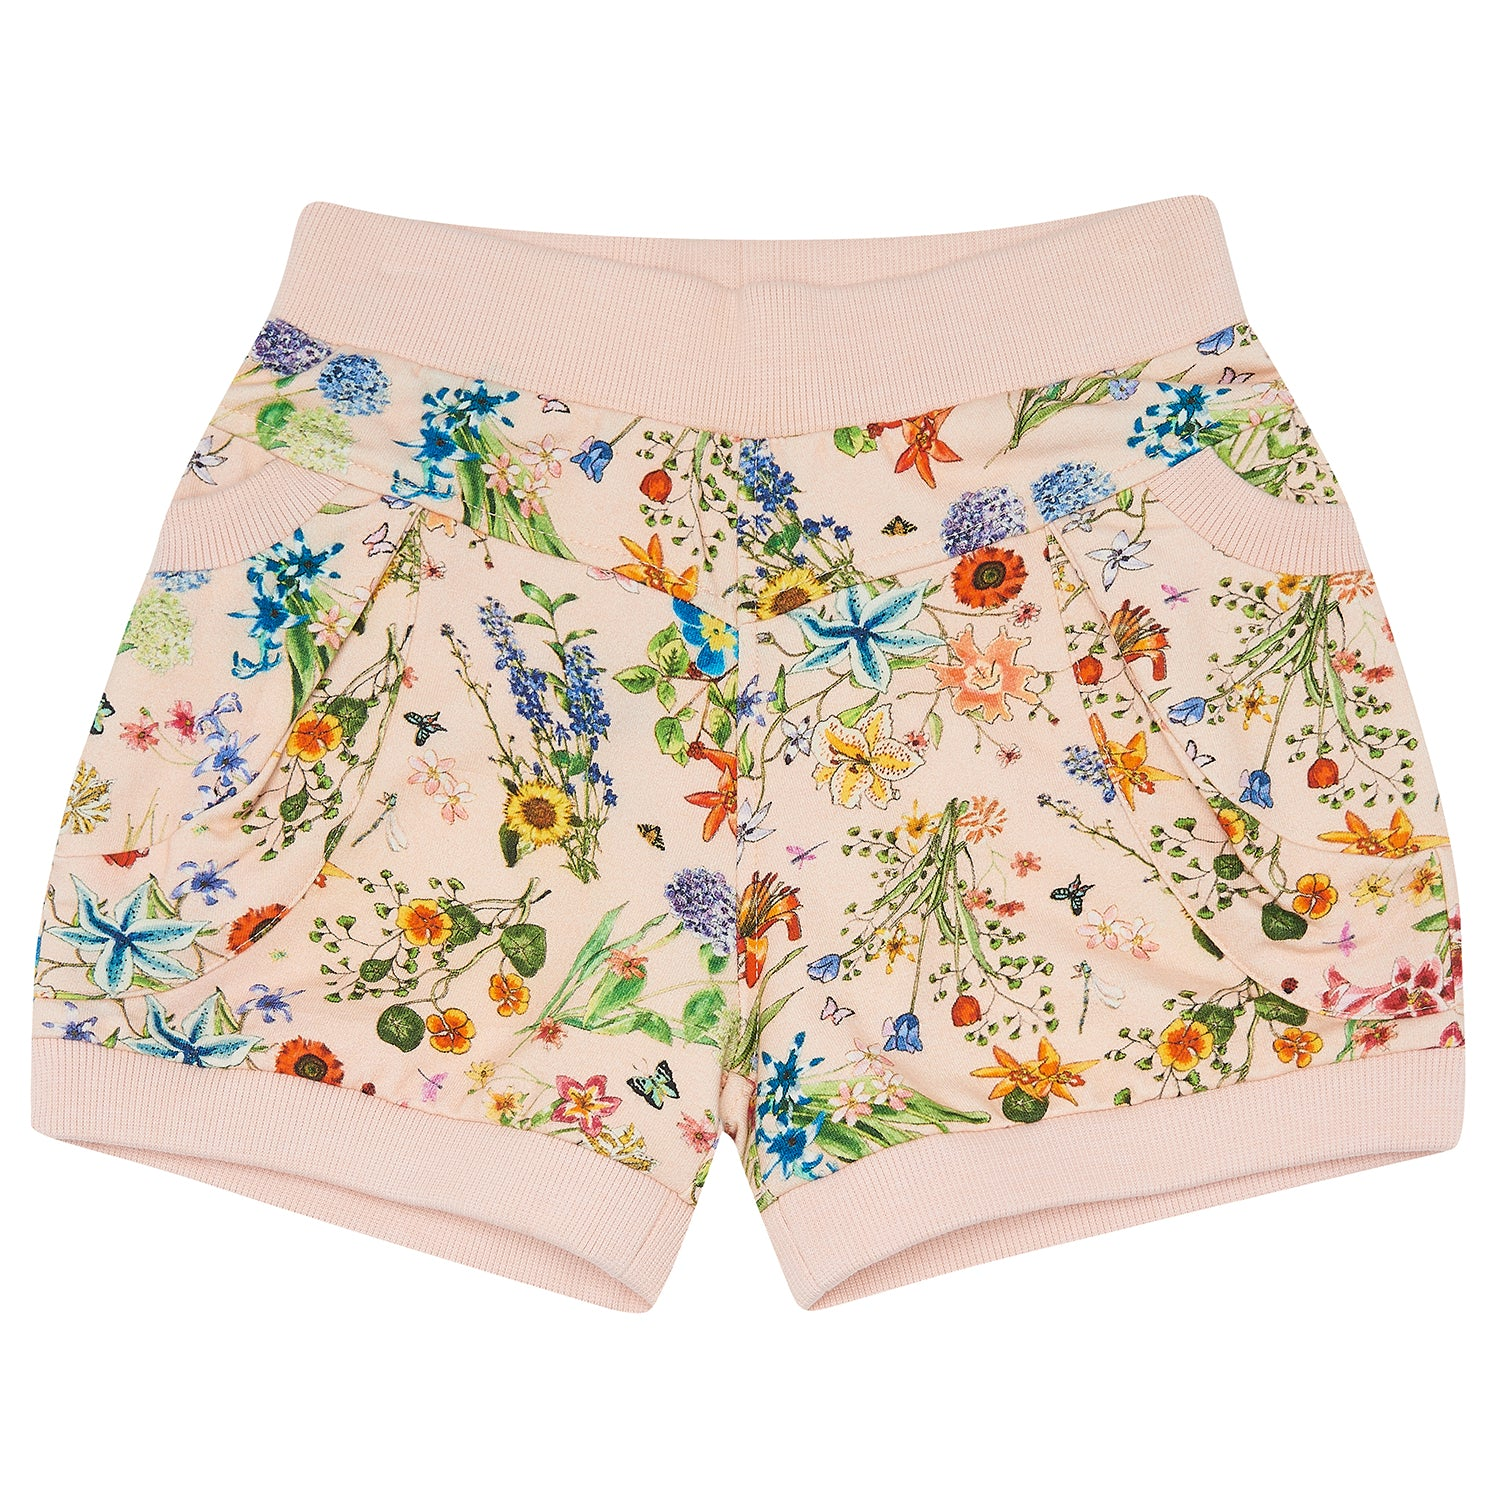 yoya, kids, girls, the middle daughter, summer, lightweight, casual, graphic print, floral, elastic waist, pull on shorts